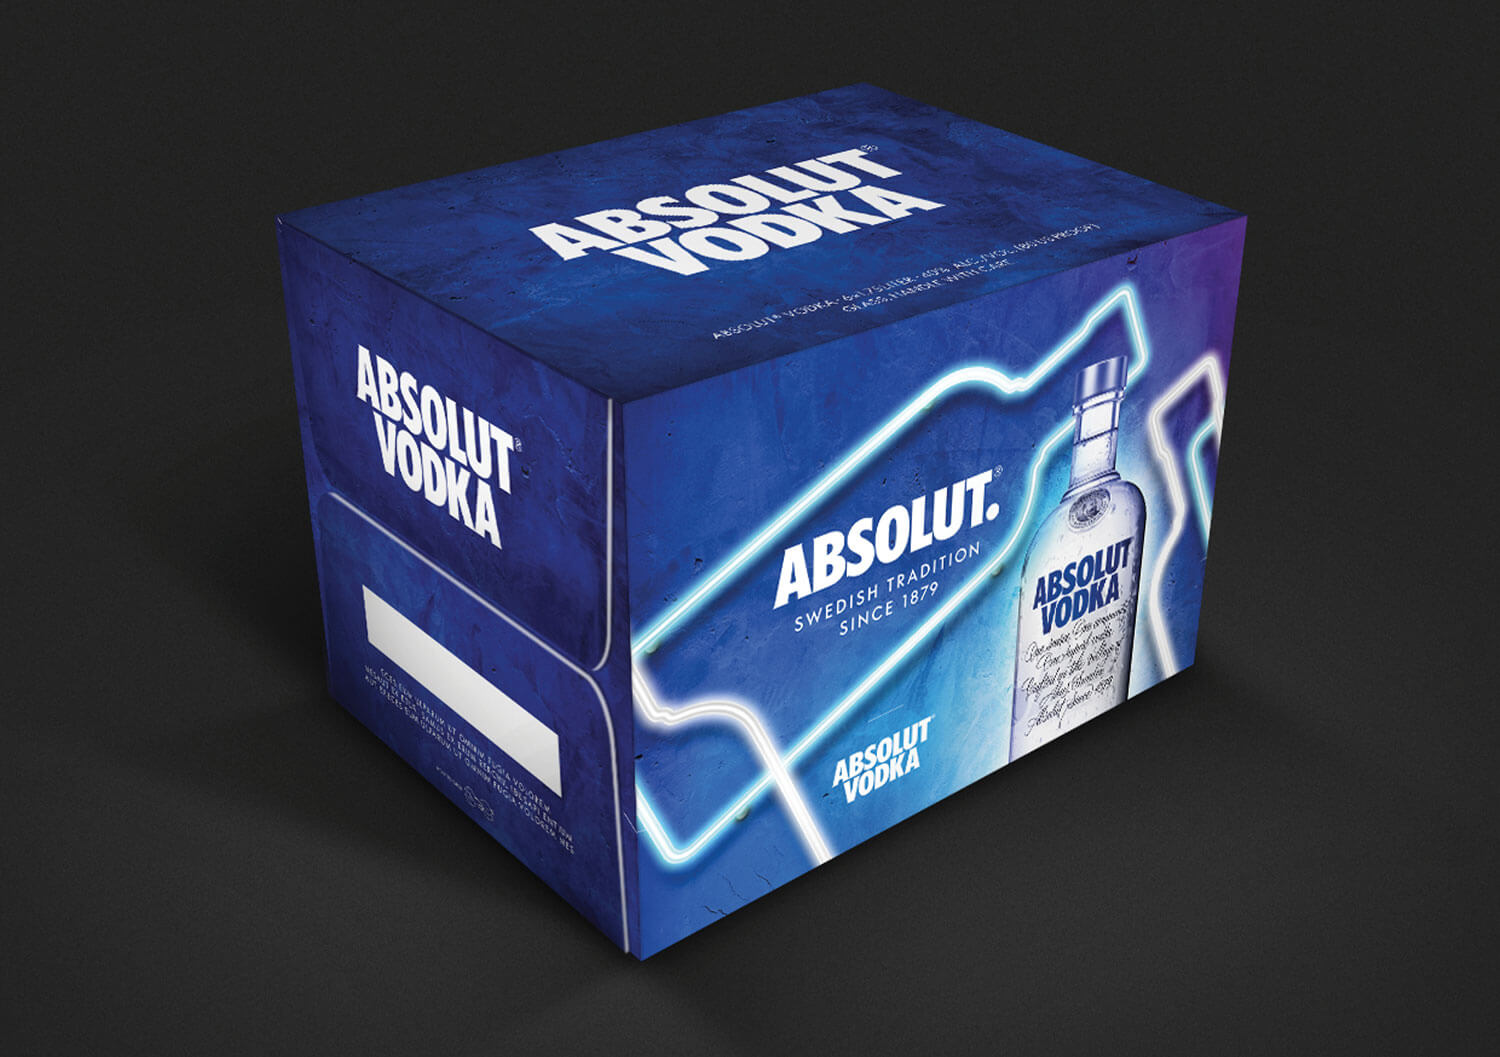 Shipper case closed for Absolut Vodka